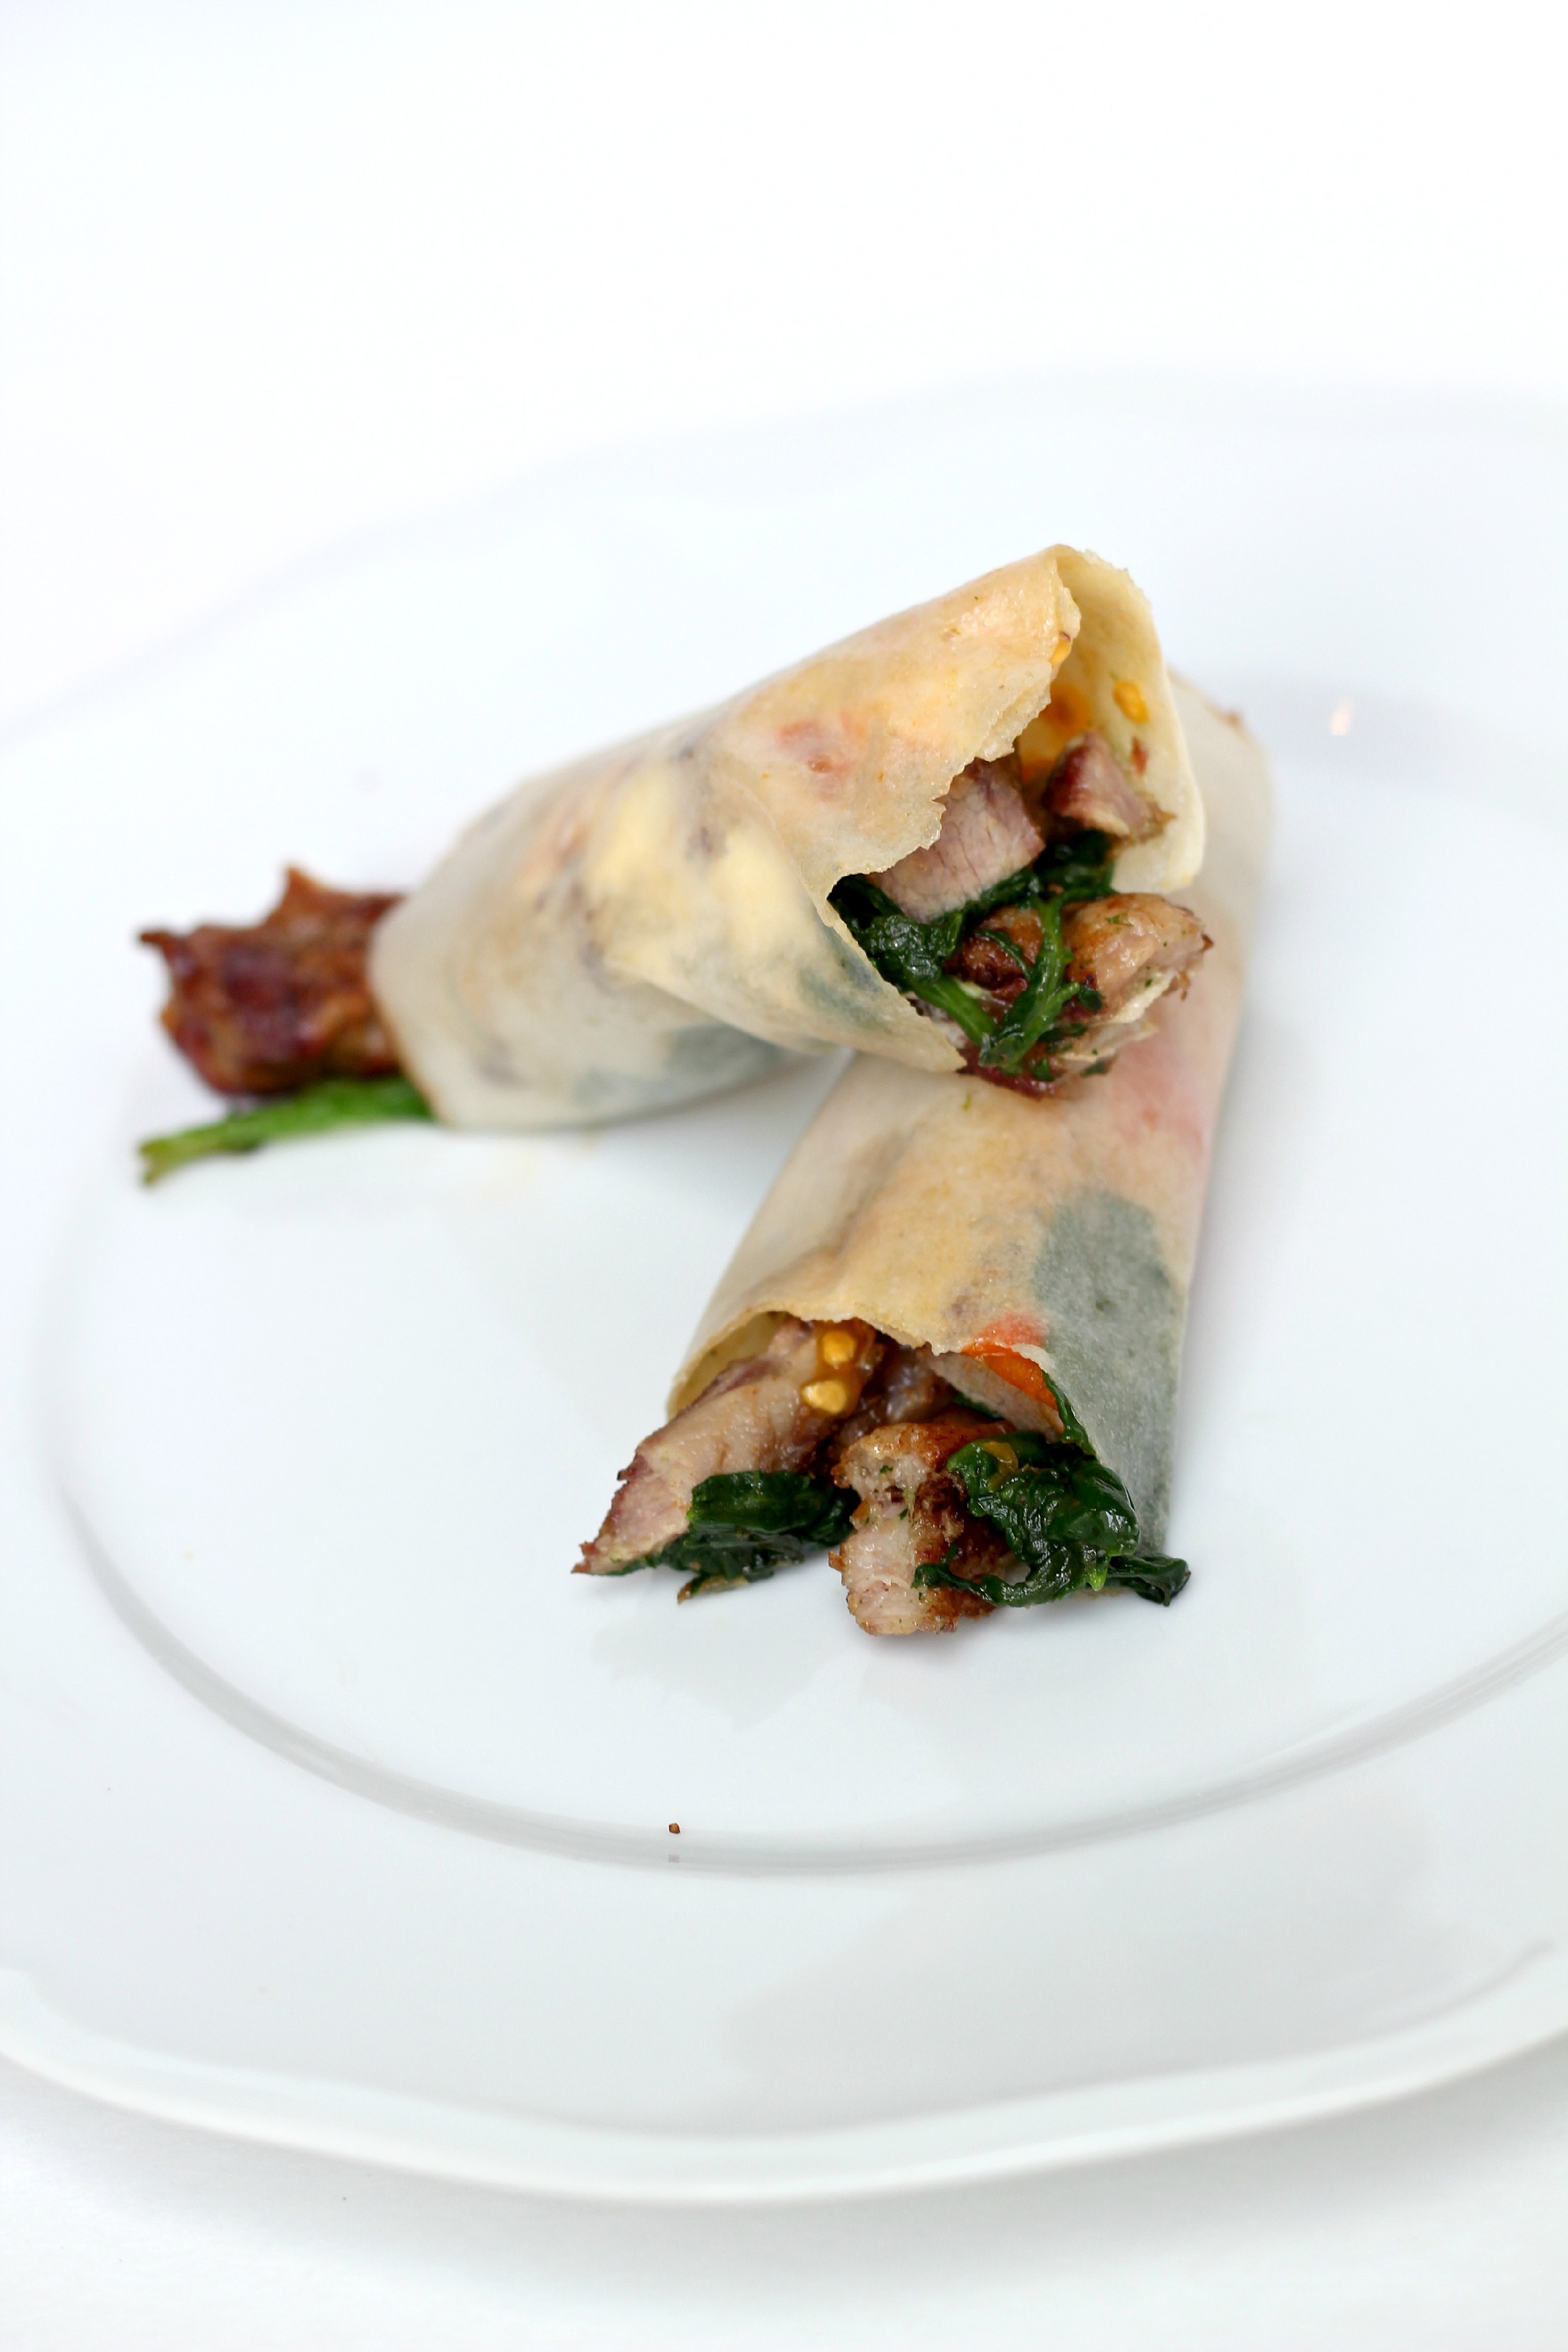 This Paleo Pork wrap is PERFECT for lunch. It's packed with flavor and easy to make.